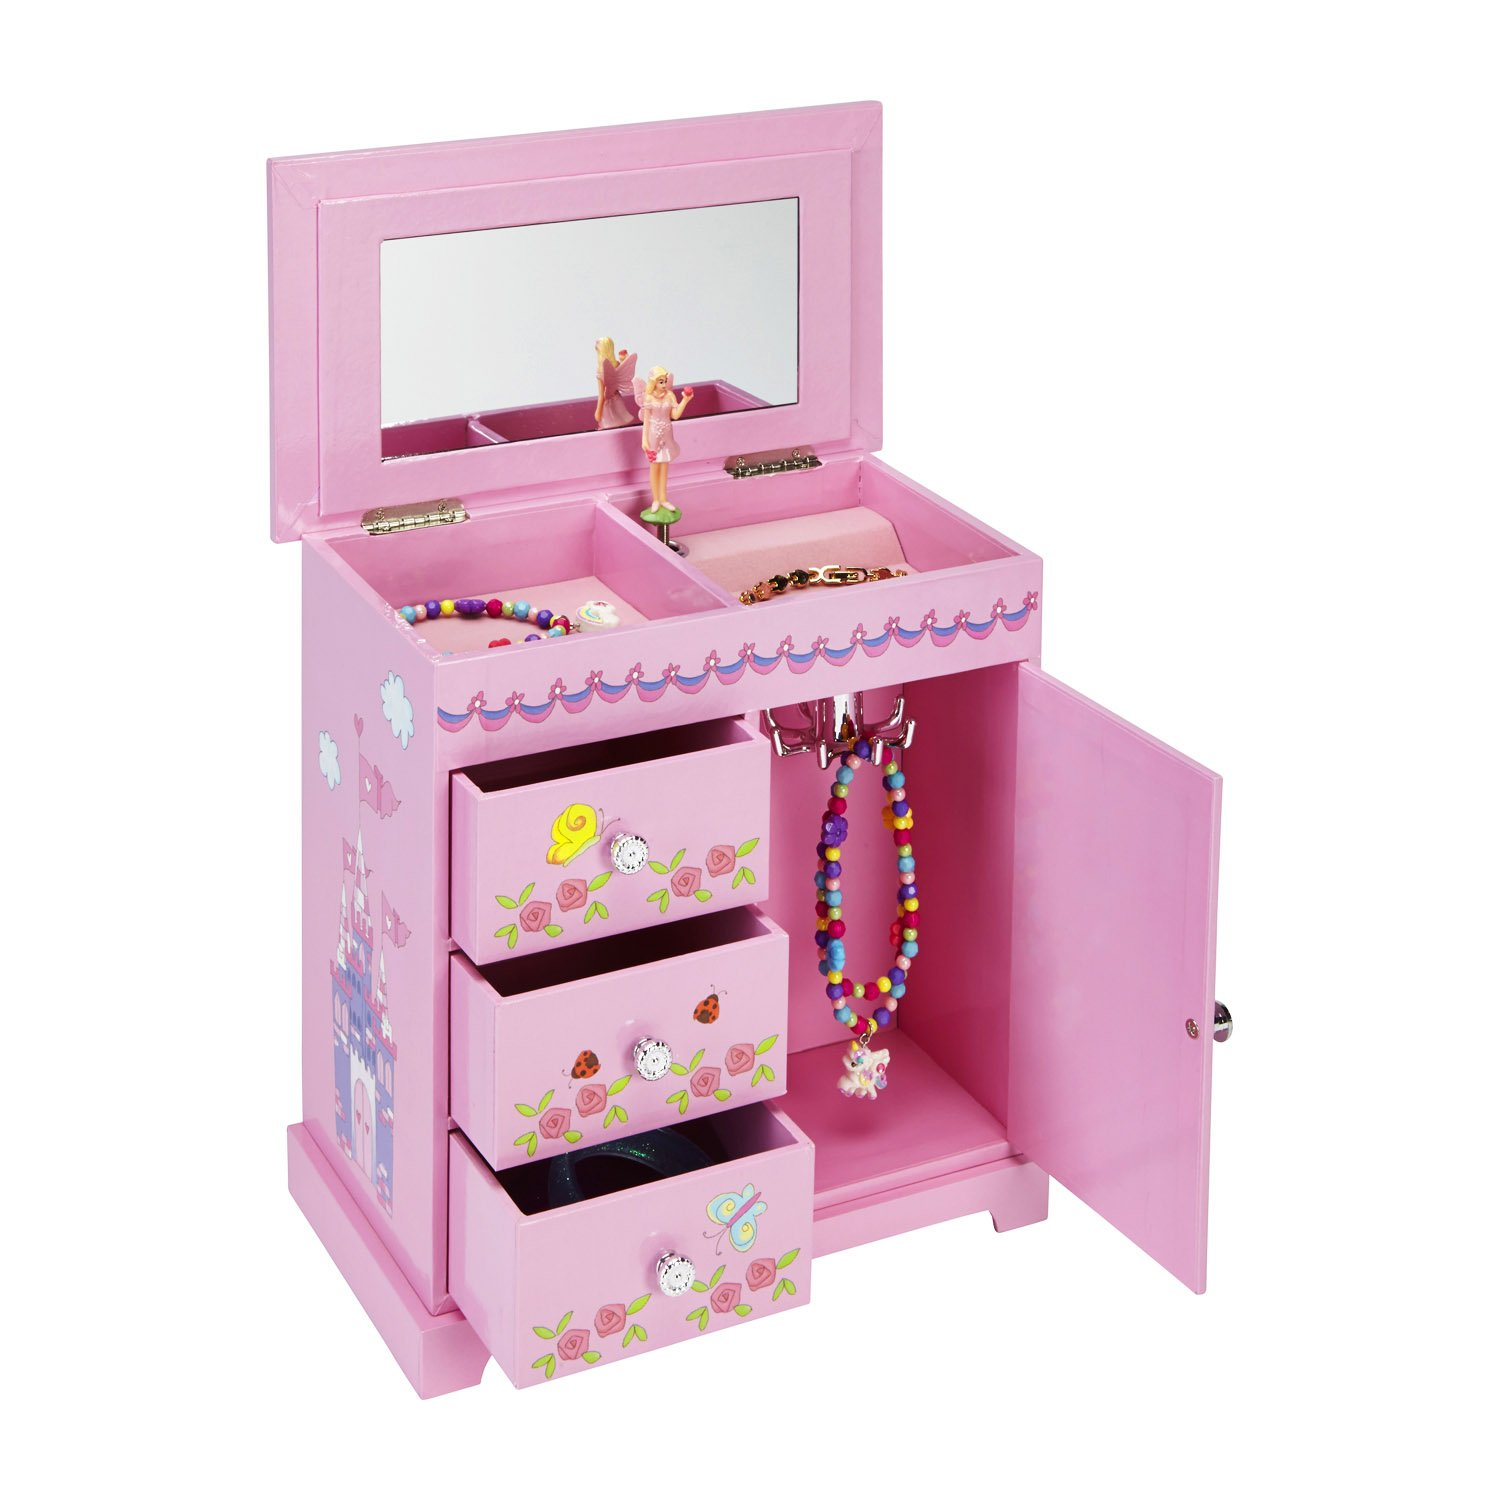 JewelKeeper Music Box with 3 Pullout Drawers, Fairy and Castle Design, Waltz of the Flowers Tune … by JewelKeeper (Image #2)